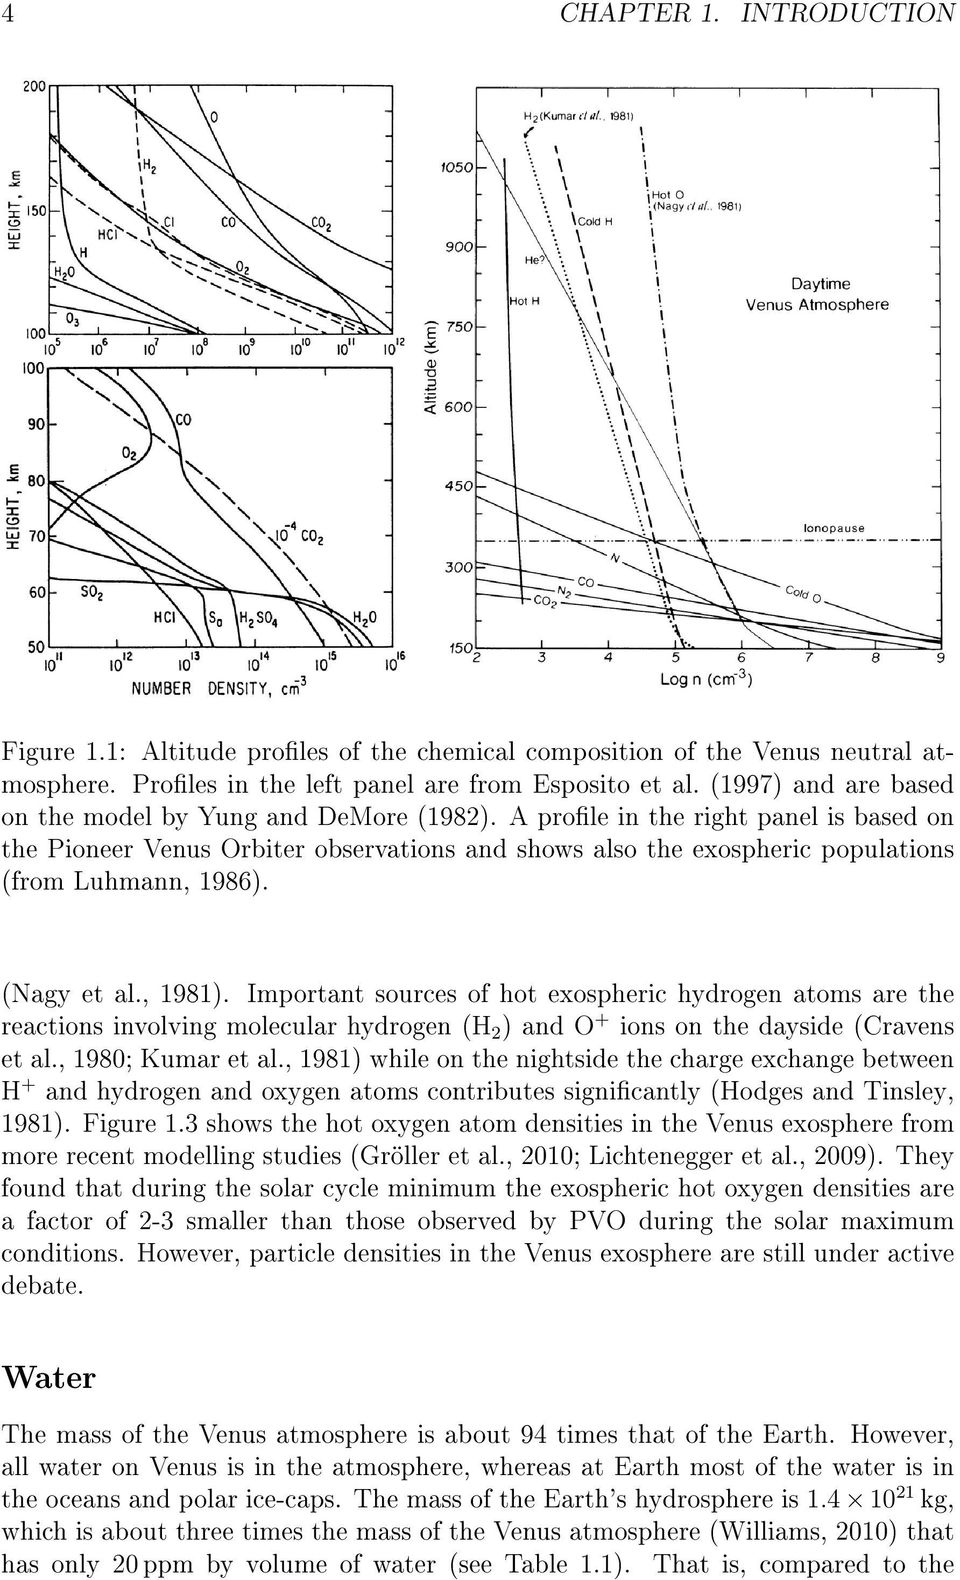 A prole in the right panel is based on the Pioneer Venus Orbiter observations and shows also the exospheric populations (from Luhmann, 1986). (Nagy et al., 1981).